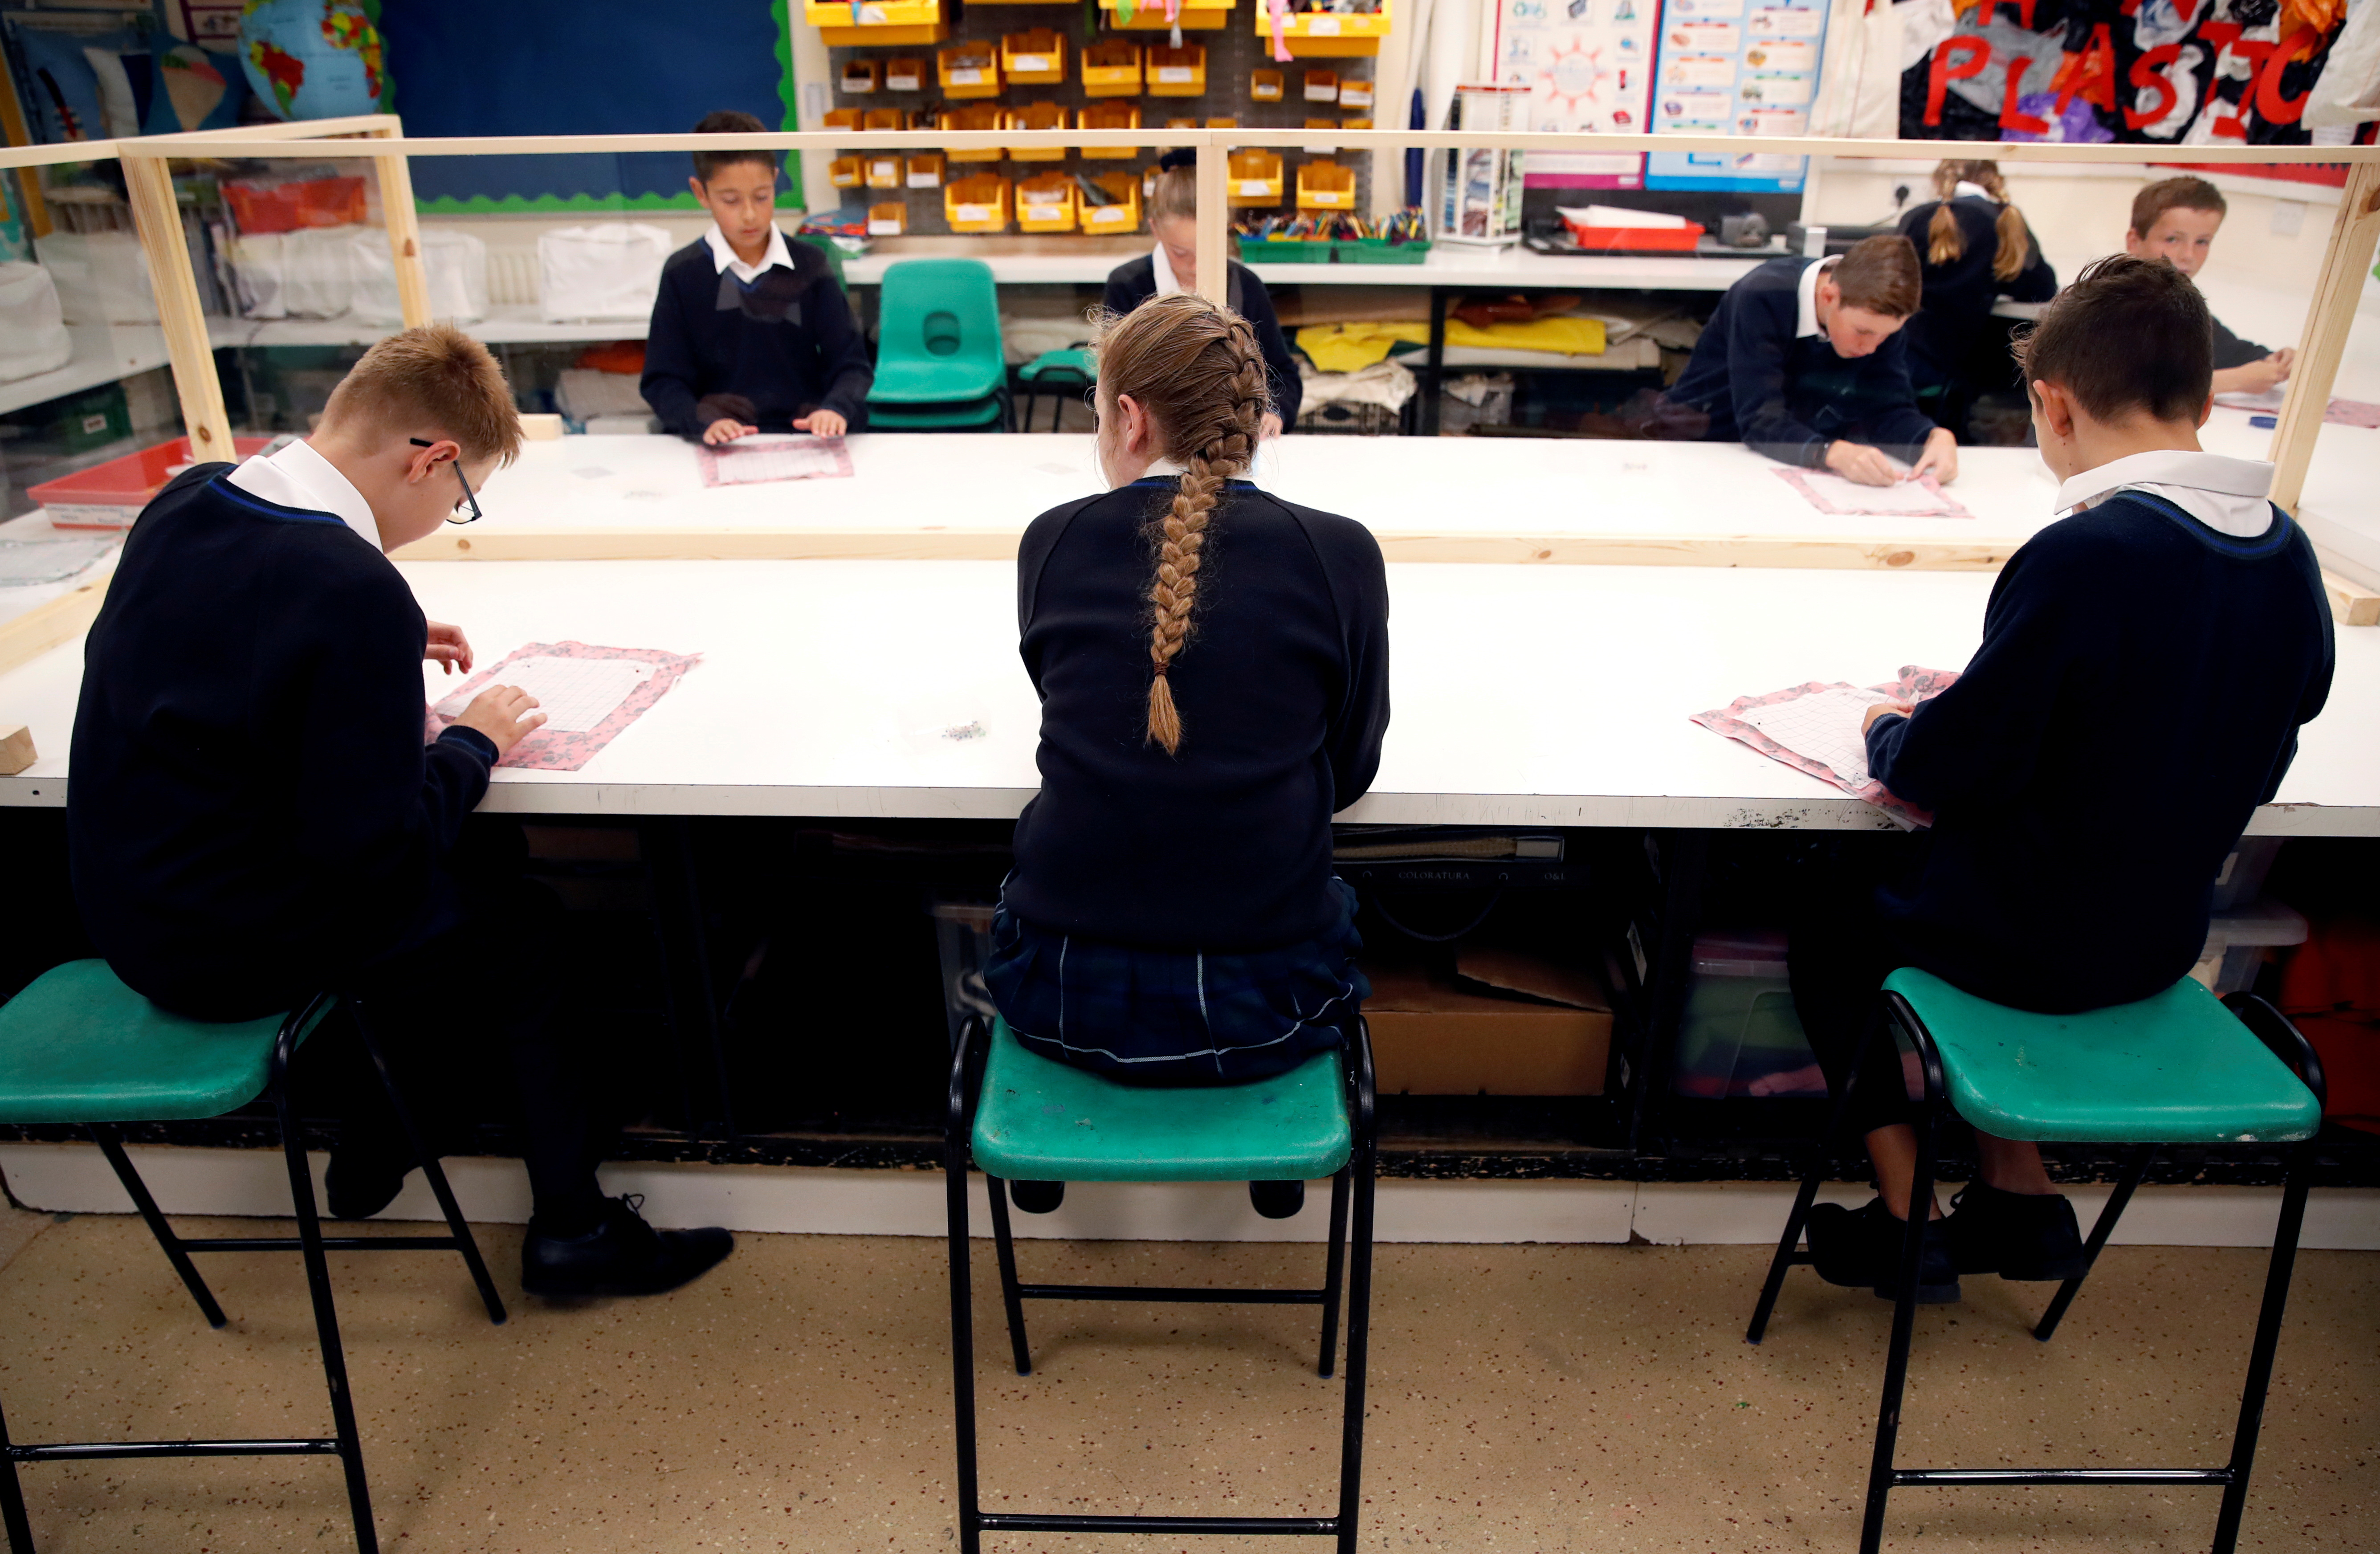 Children sit in a classroom on their first day of school at Heath Mount, amid the outbreak of the coronavirus disease (COVID-19), in Watton at Stone, Britain September 3, 2020. REUTERS/Andrew Couldridge/File Photo